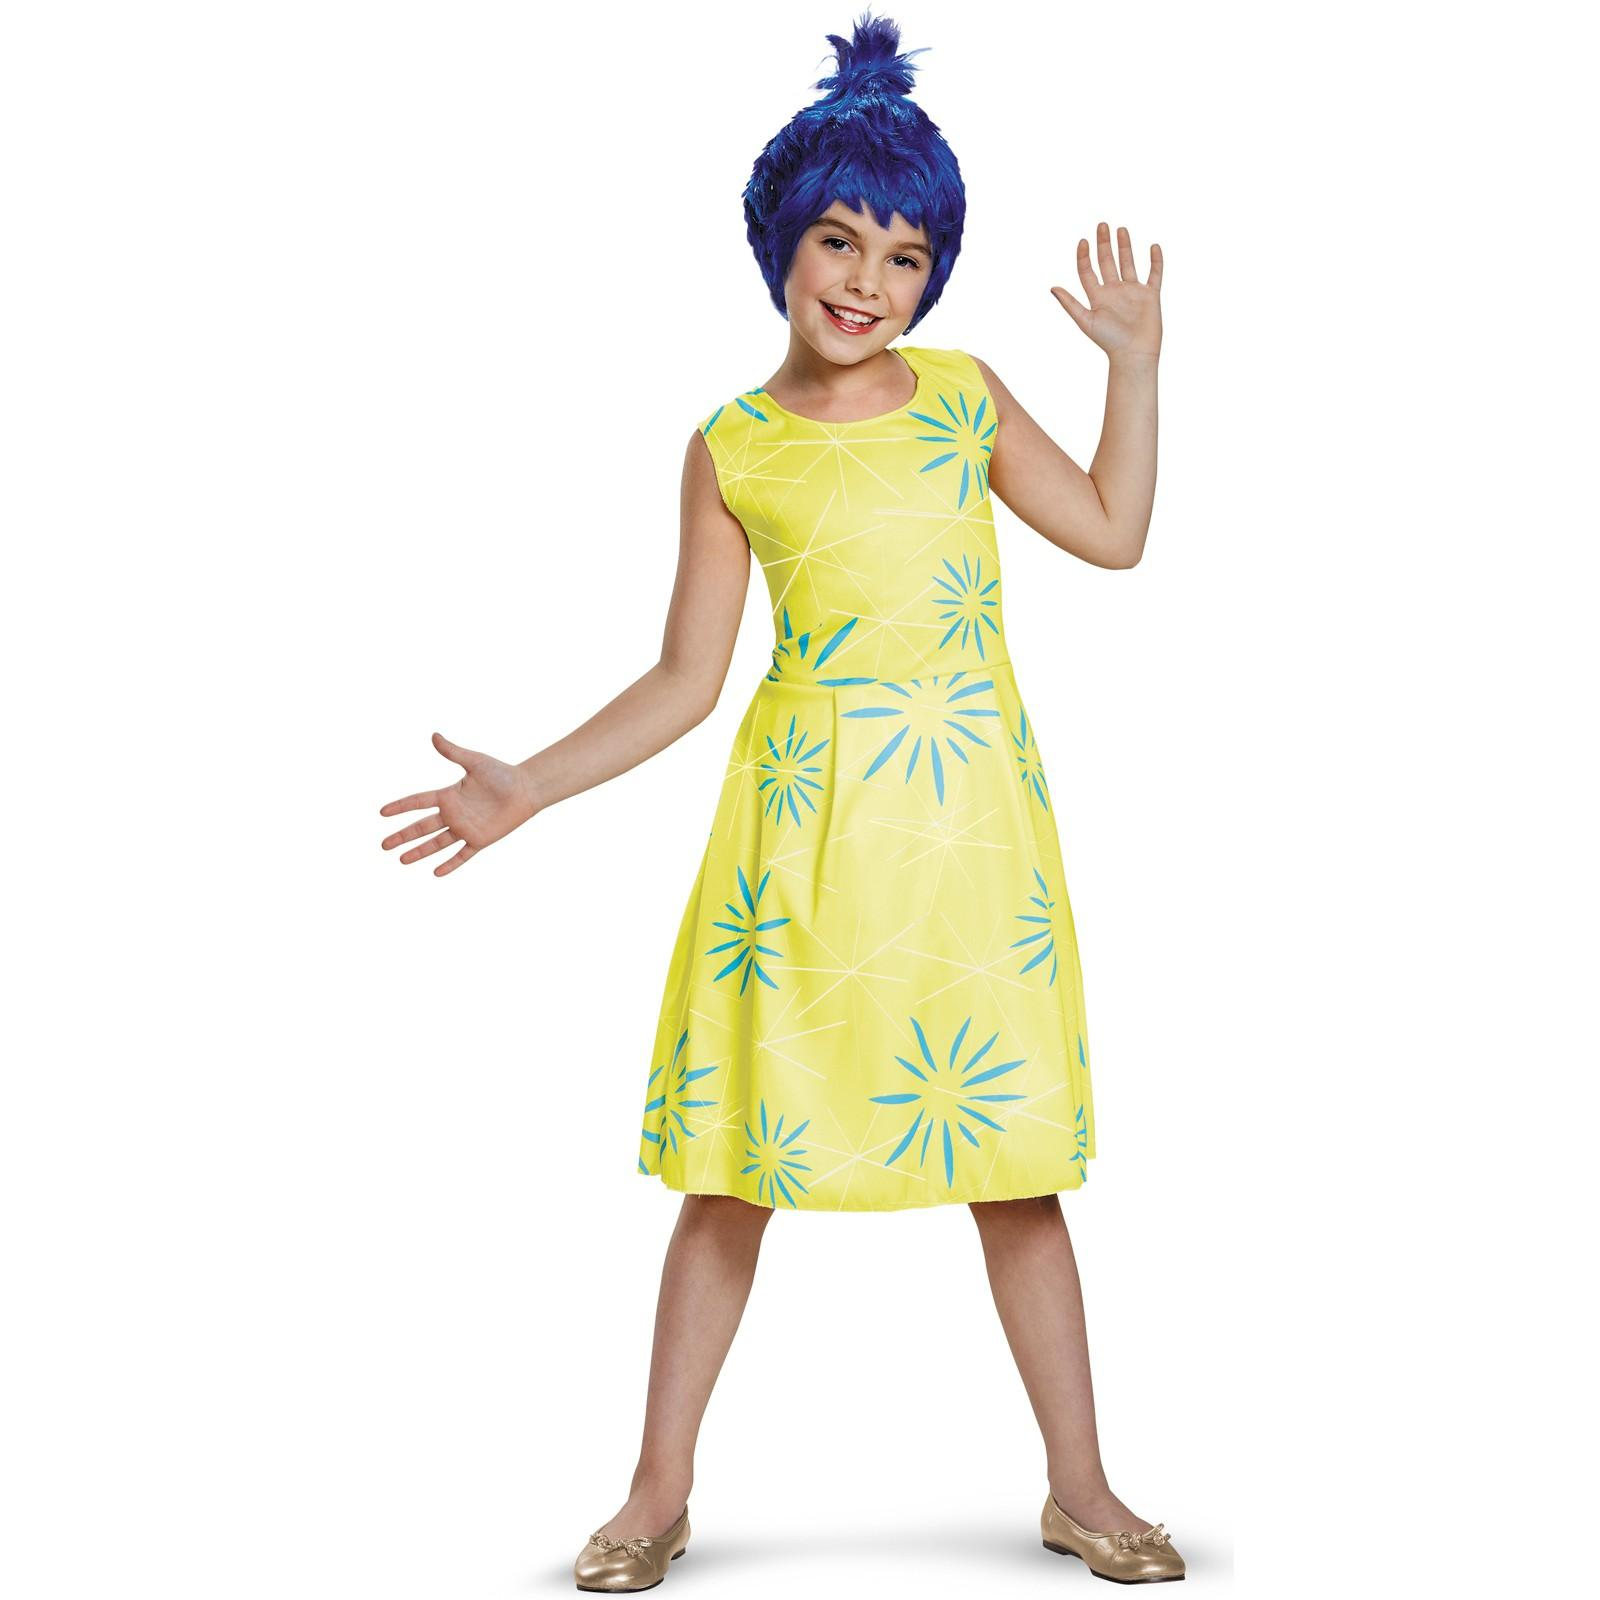 Spooktacular Halloween Costumes for Babies, Toddlers and the Big ...